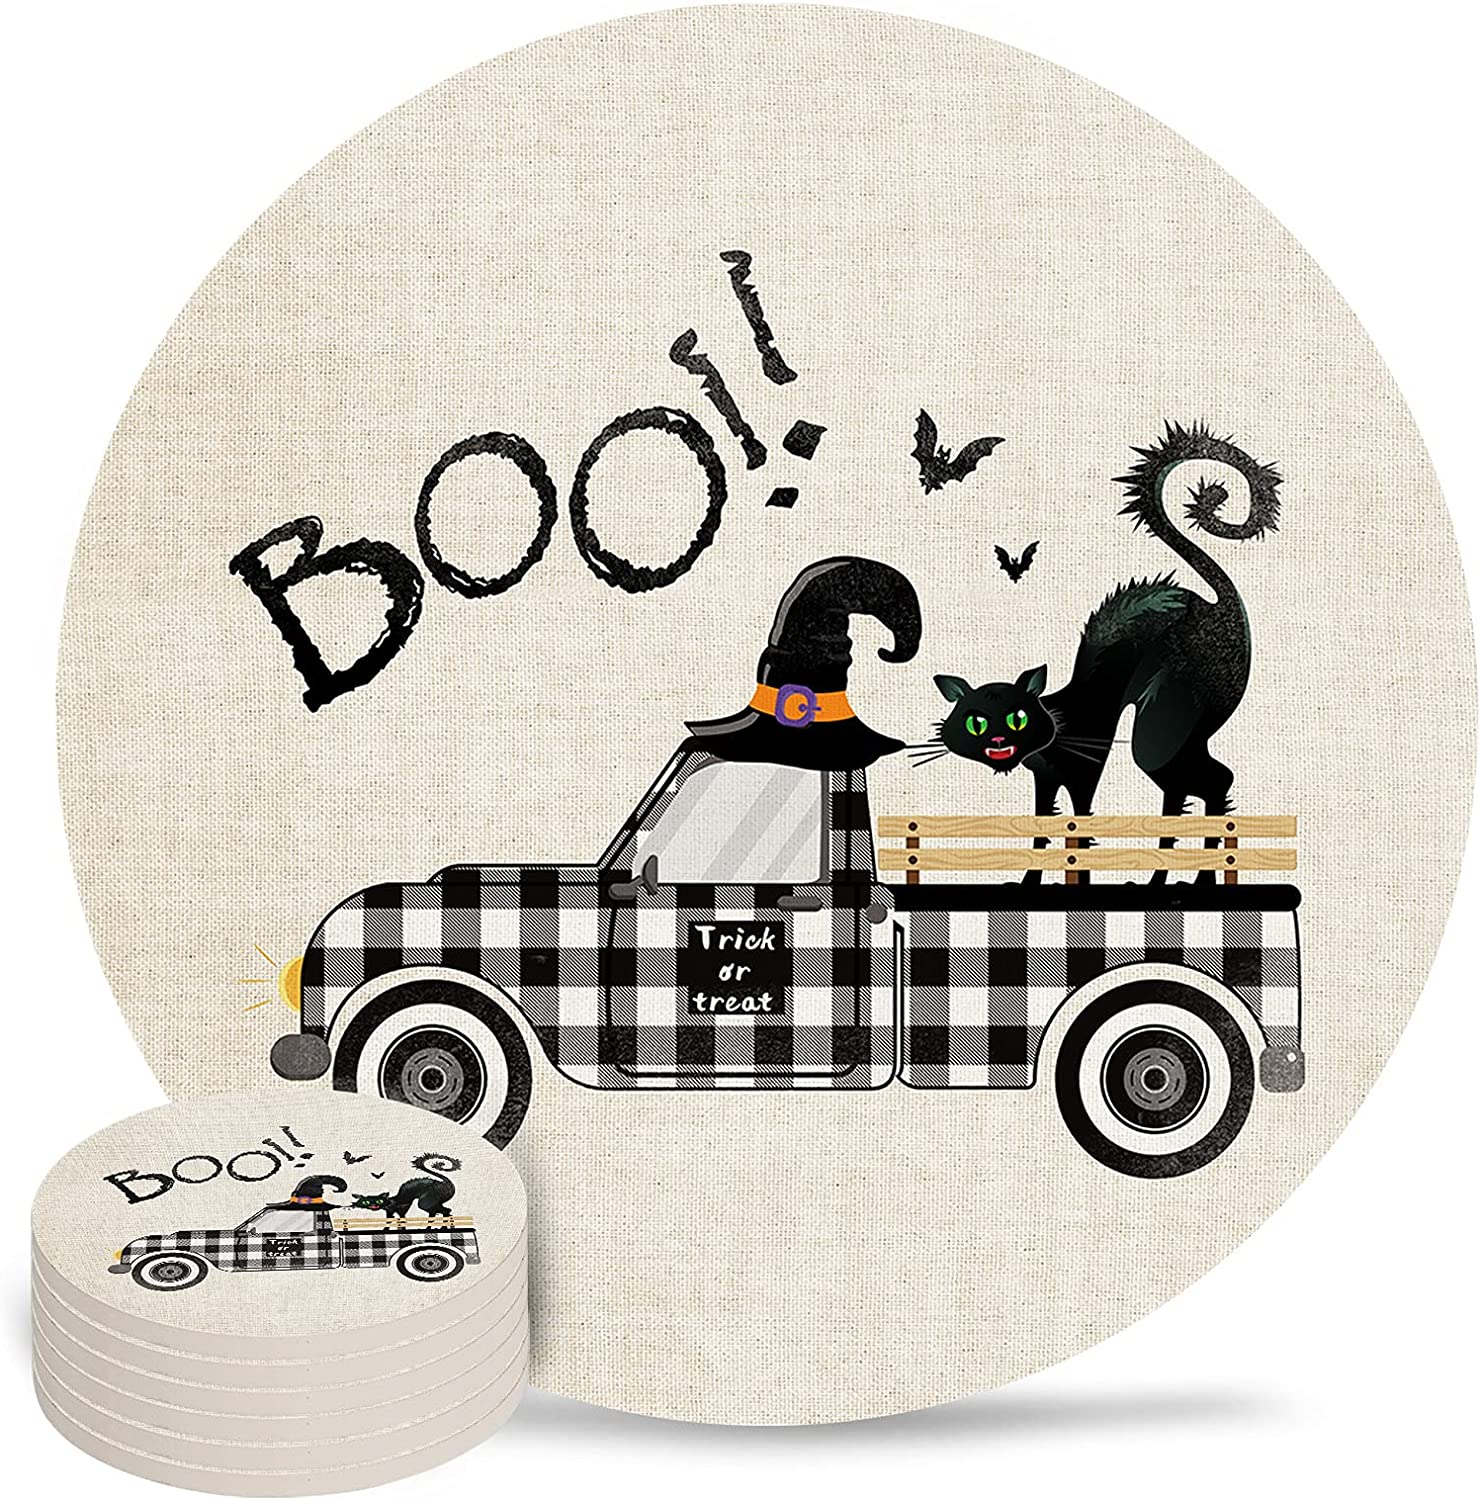 Halloween Coaster for Drinks 4 Drin Pad Super intense SALE Inch Ceramic Ranking TOP15 Absorbent